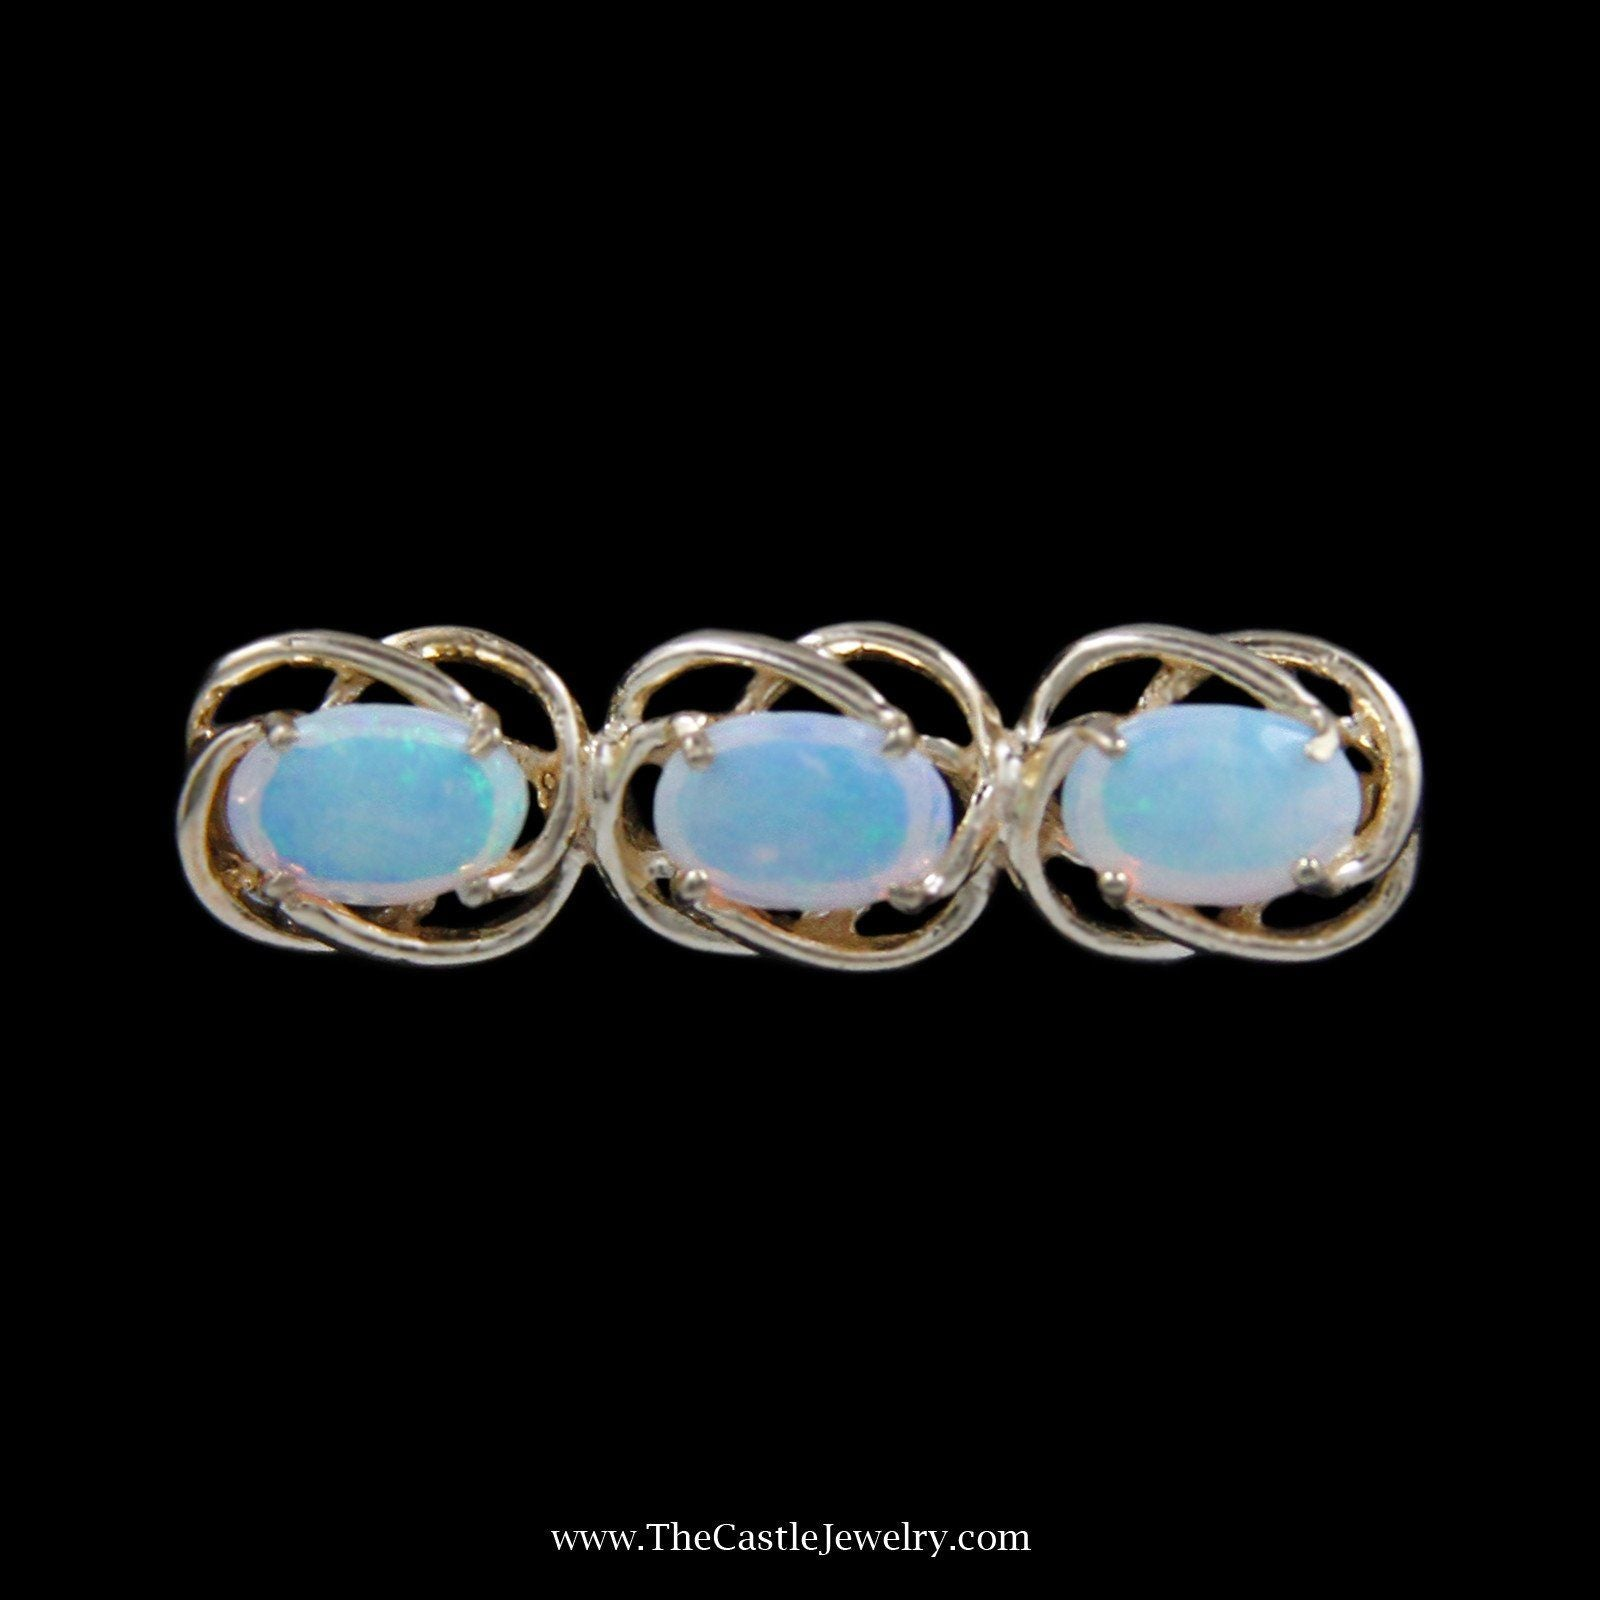 Gorgeous 3 Oval Opal Pin with Looped Design Bezels in Yellow Gold